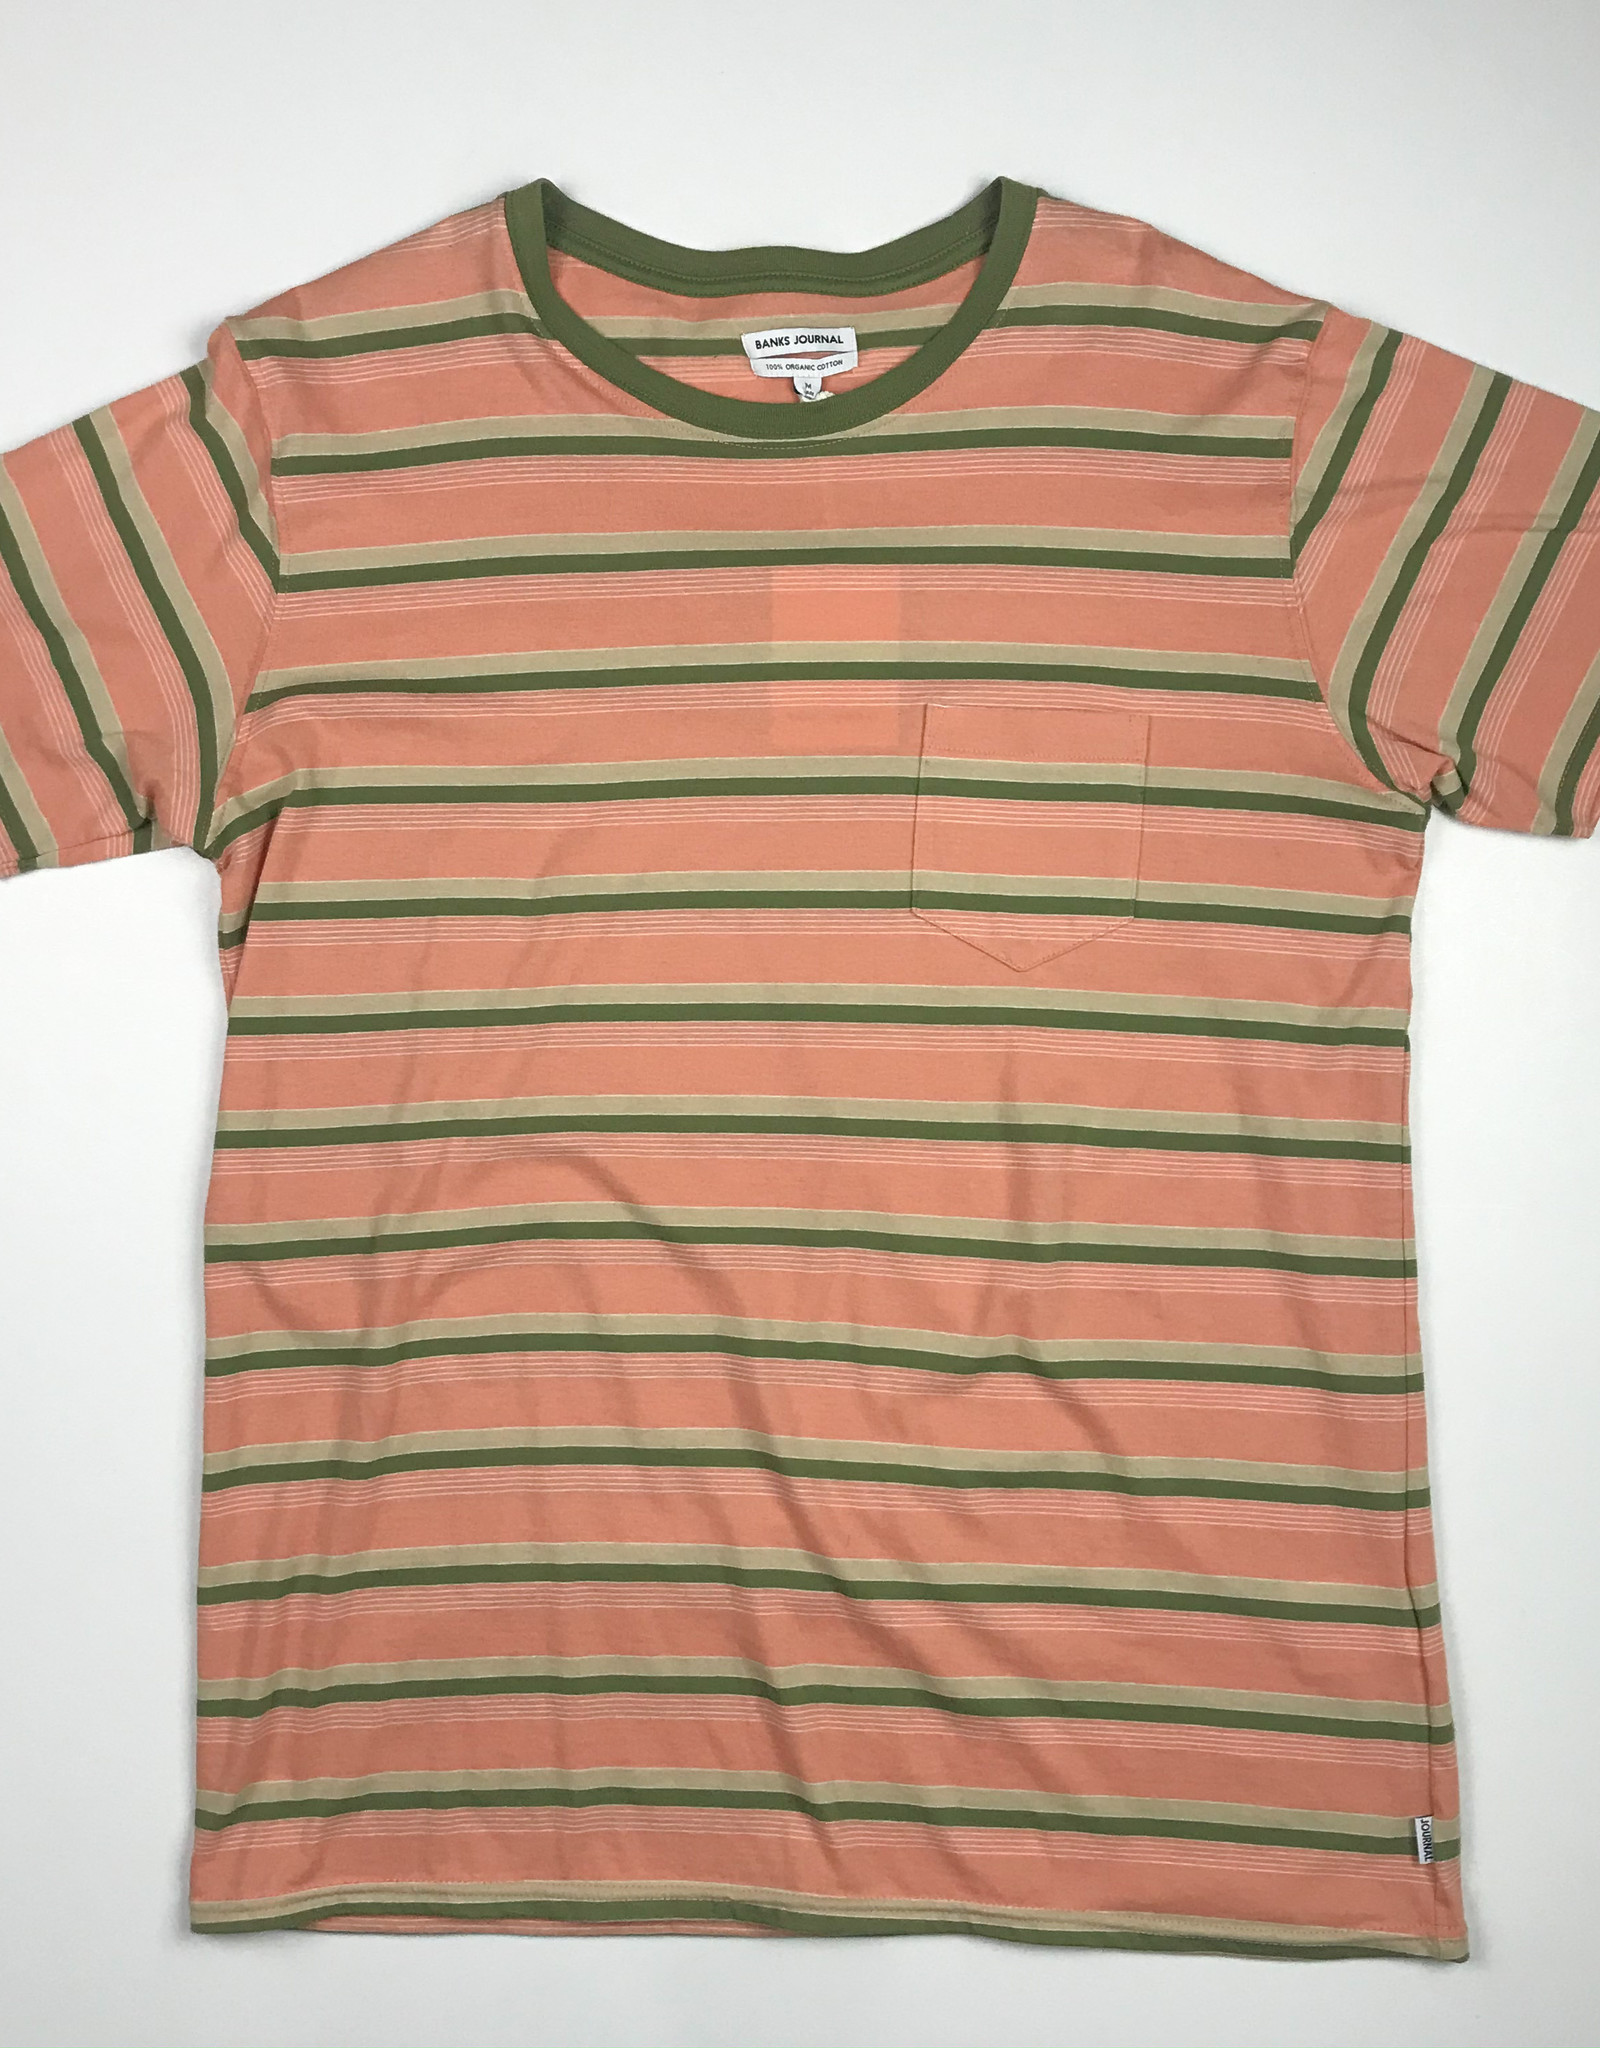 BANKS JOURNAL BANKS JOURNAL SANS S/S TEE - FADED PEACH